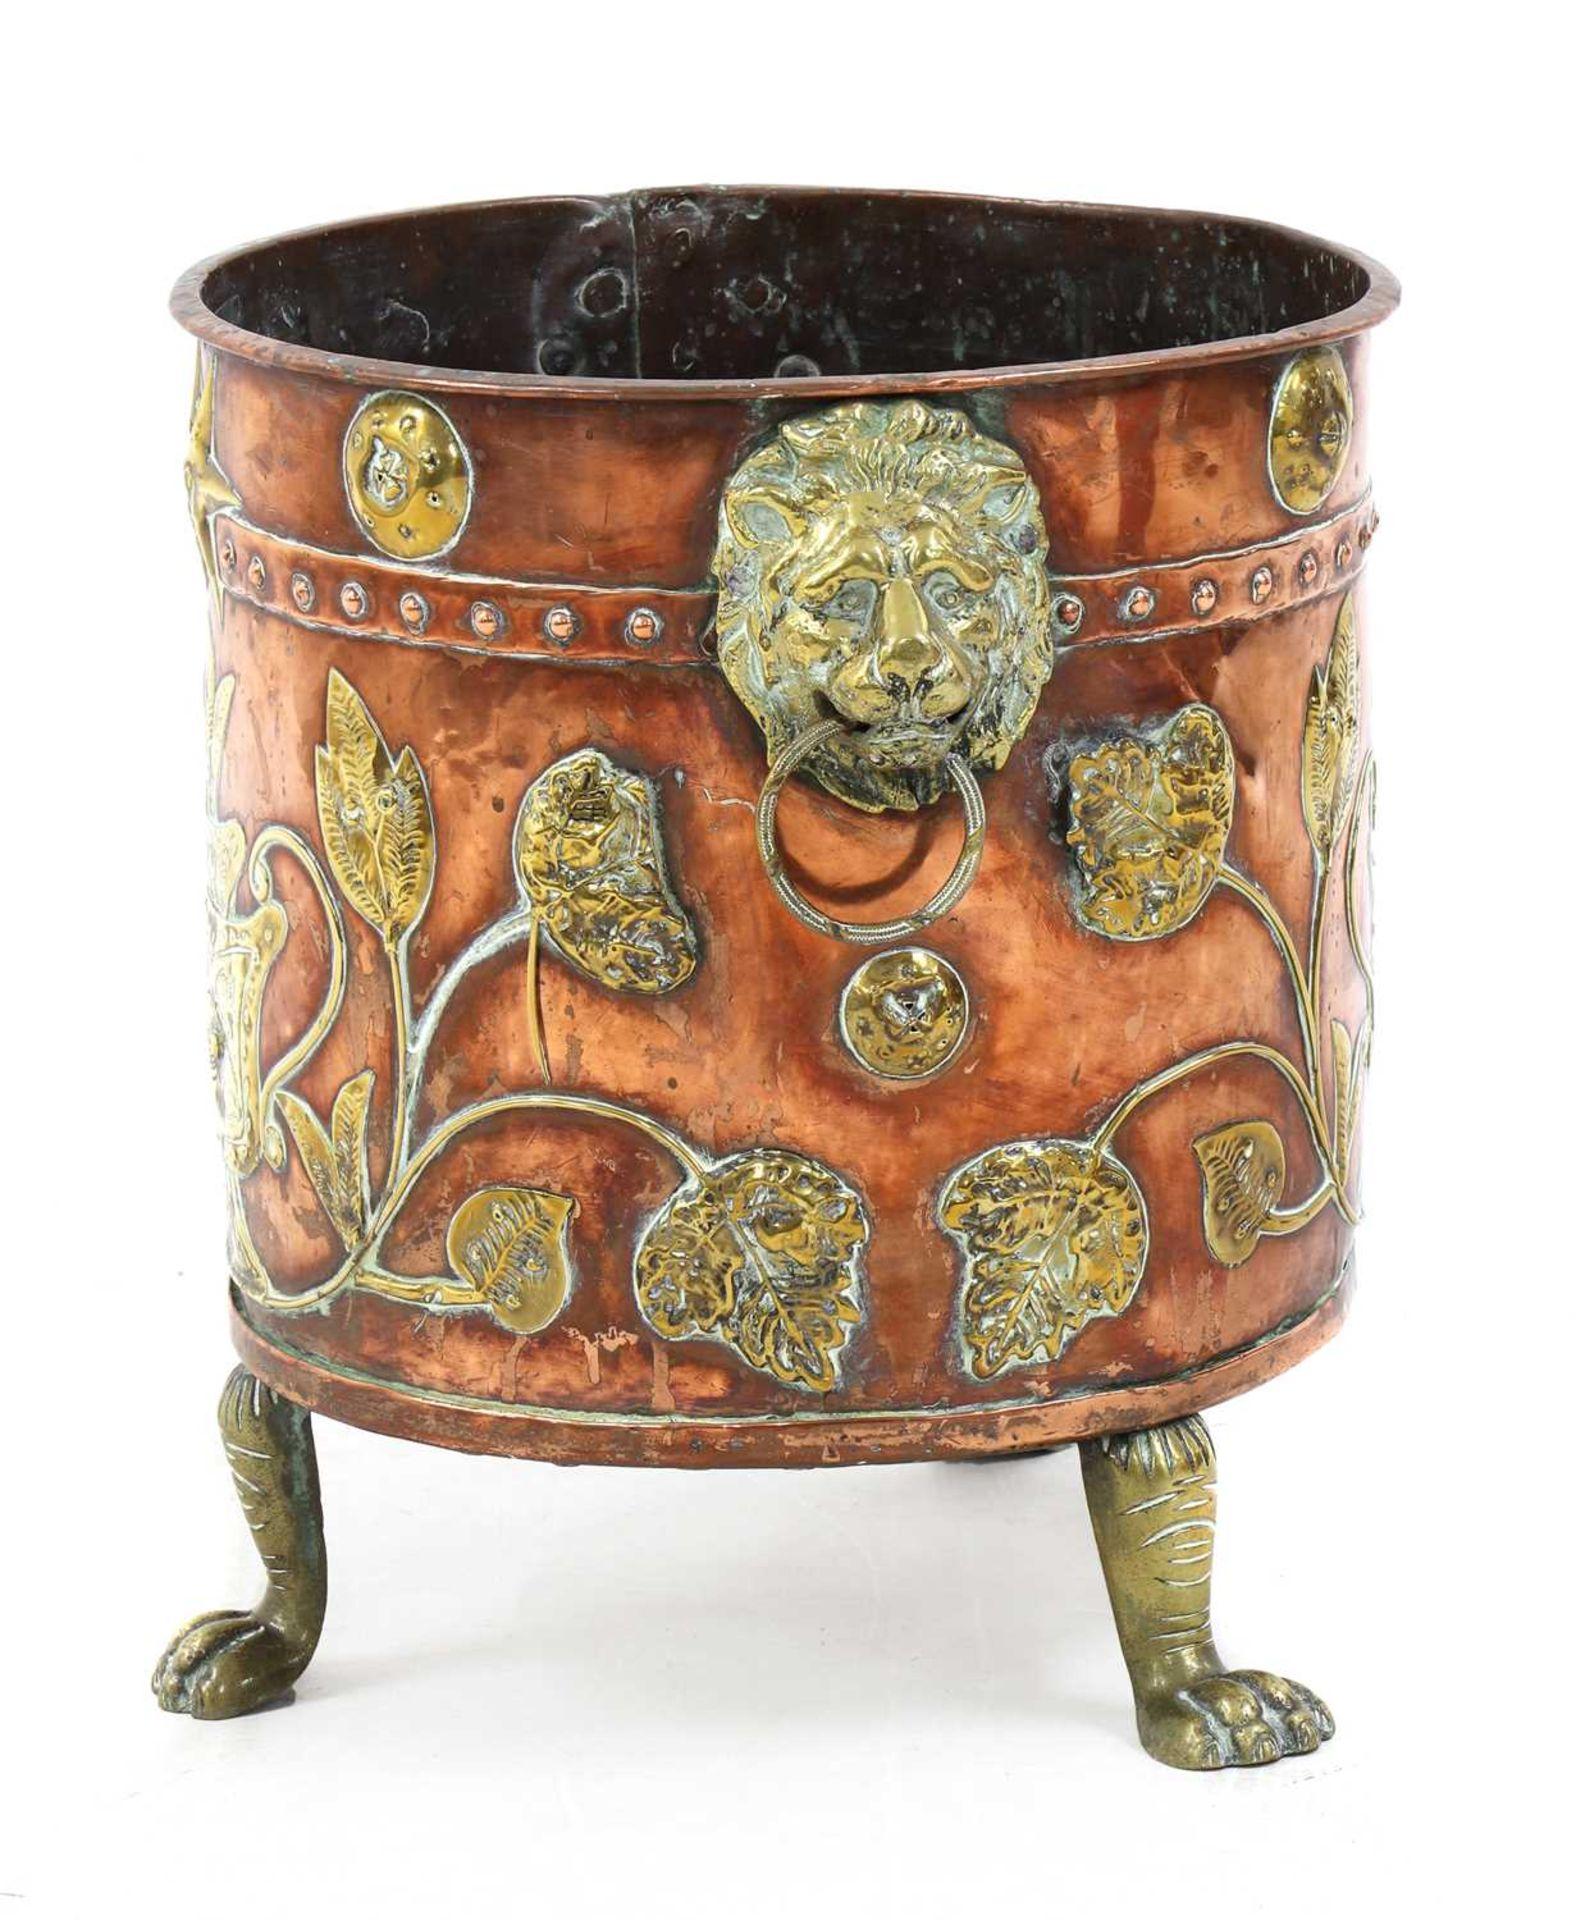 A copper and brass coal bucket, - Image 2 of 5